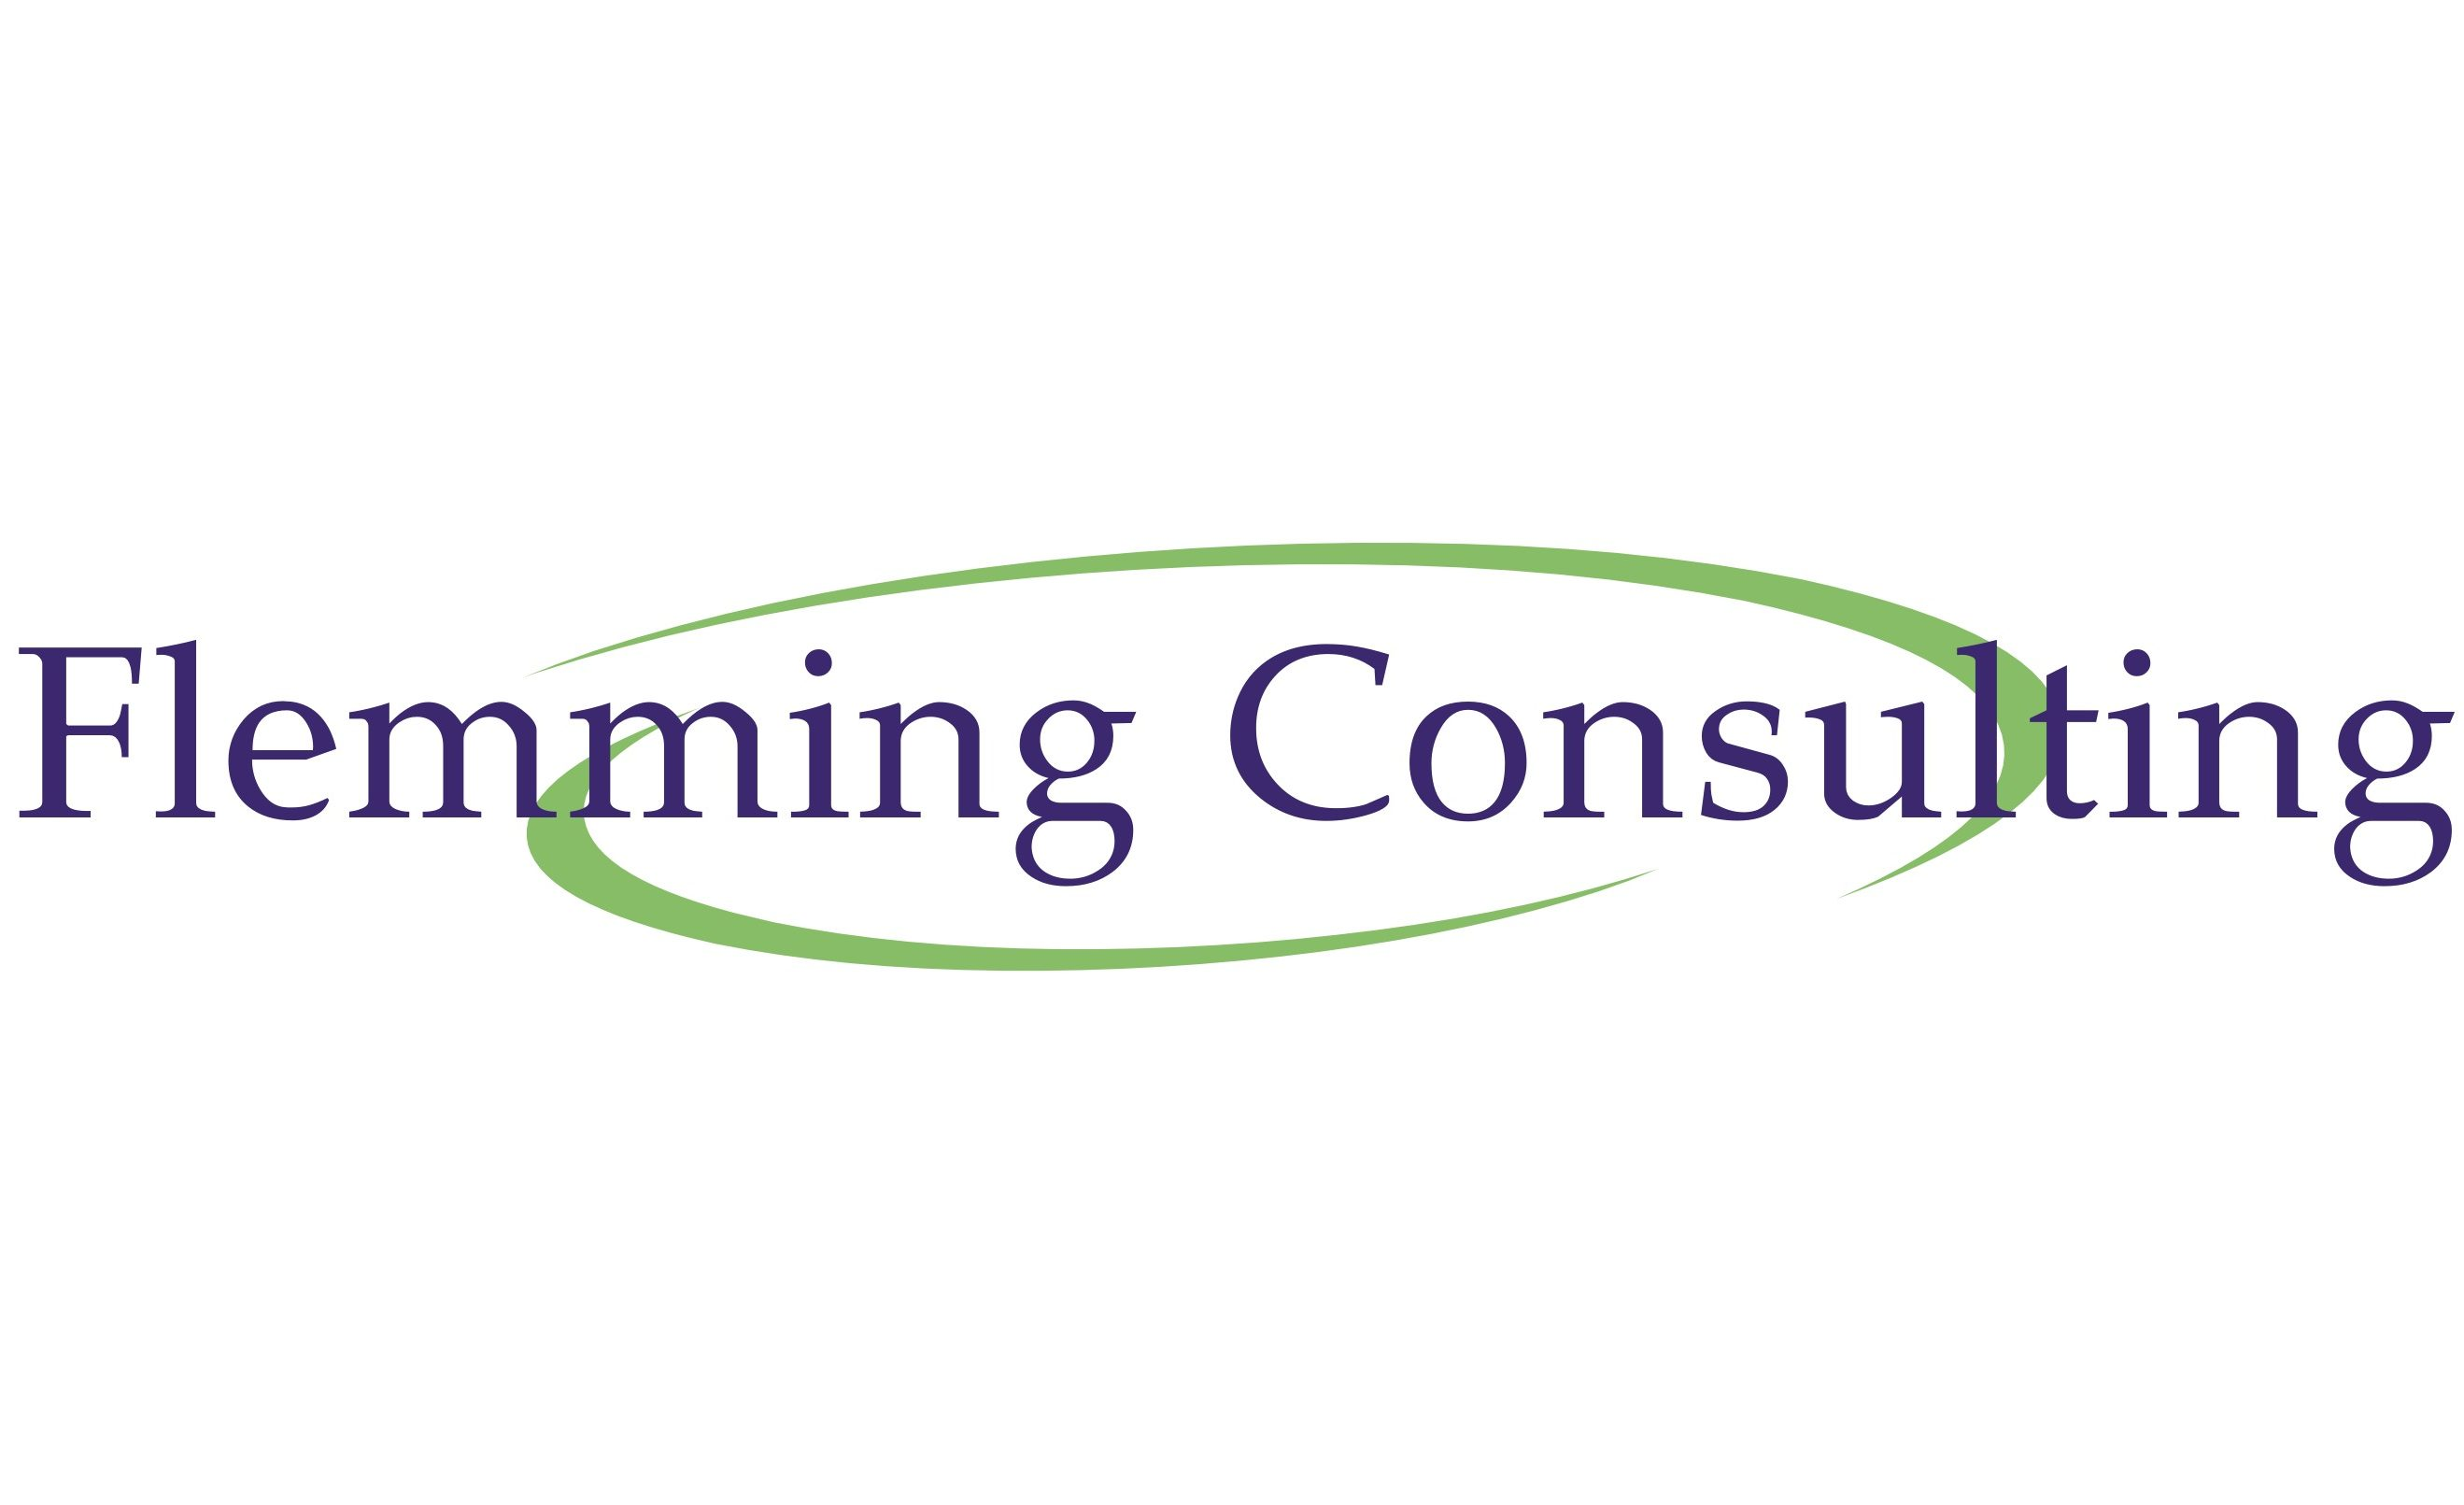 Flemming Consulting